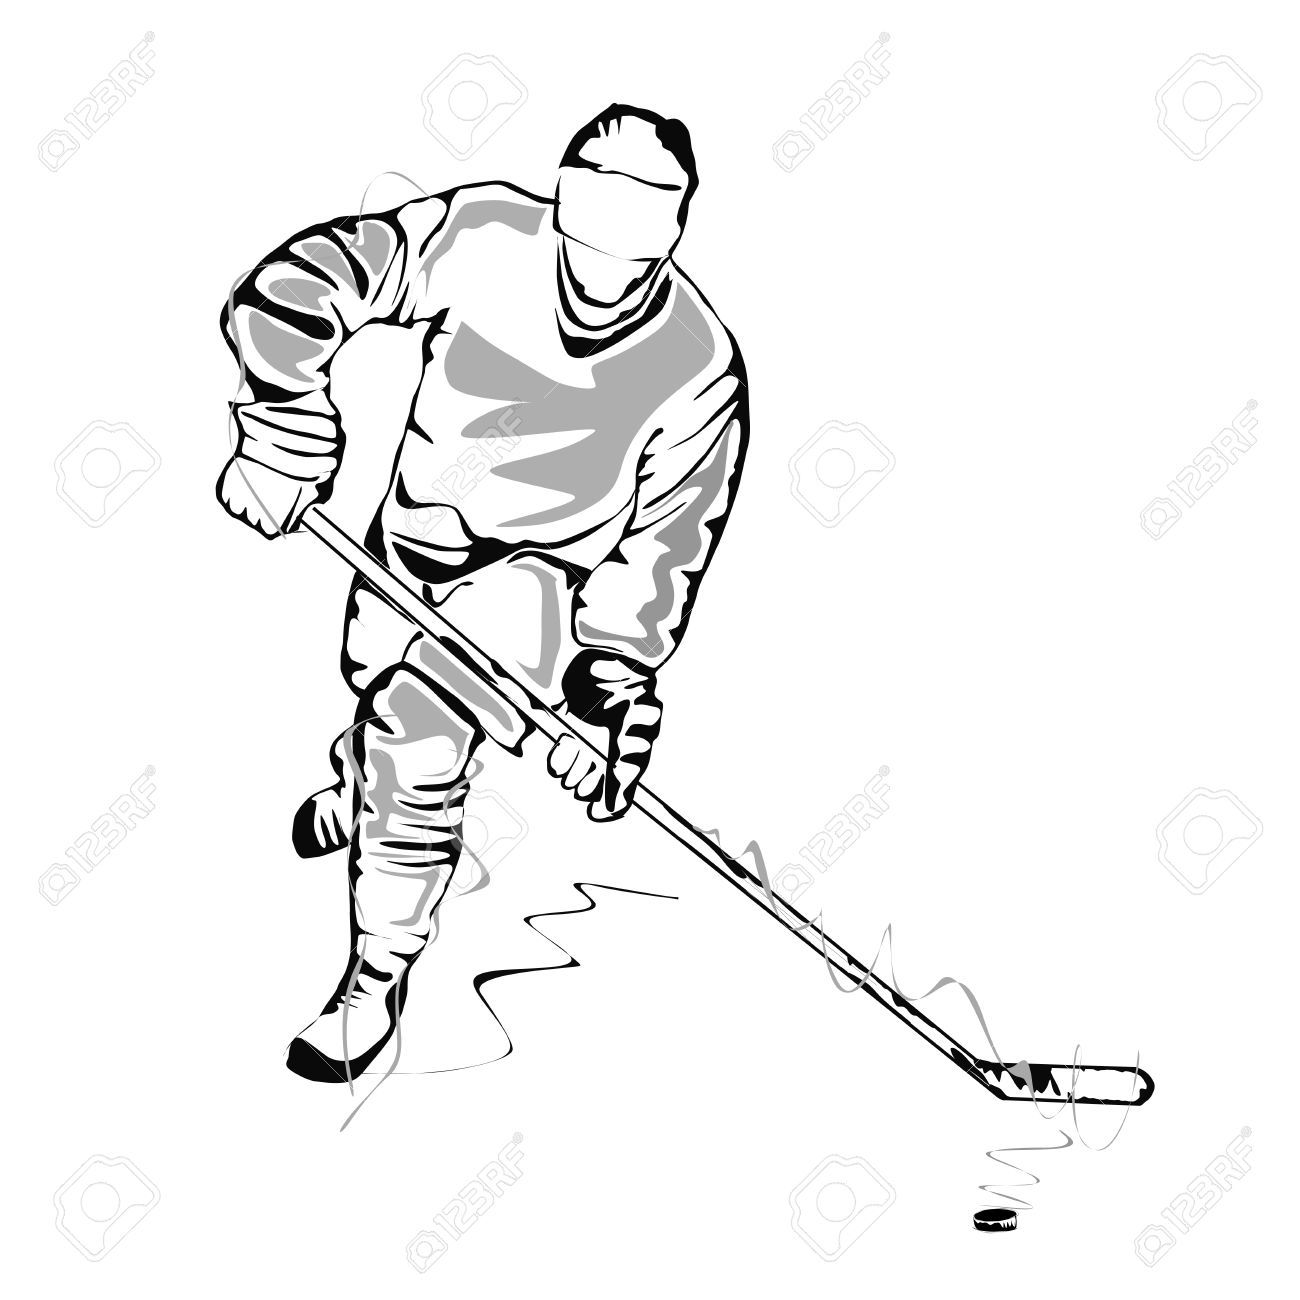 hockey player sketch royalty free cliparts vectors and stock  [ 1300 x 1300 Pixel ]